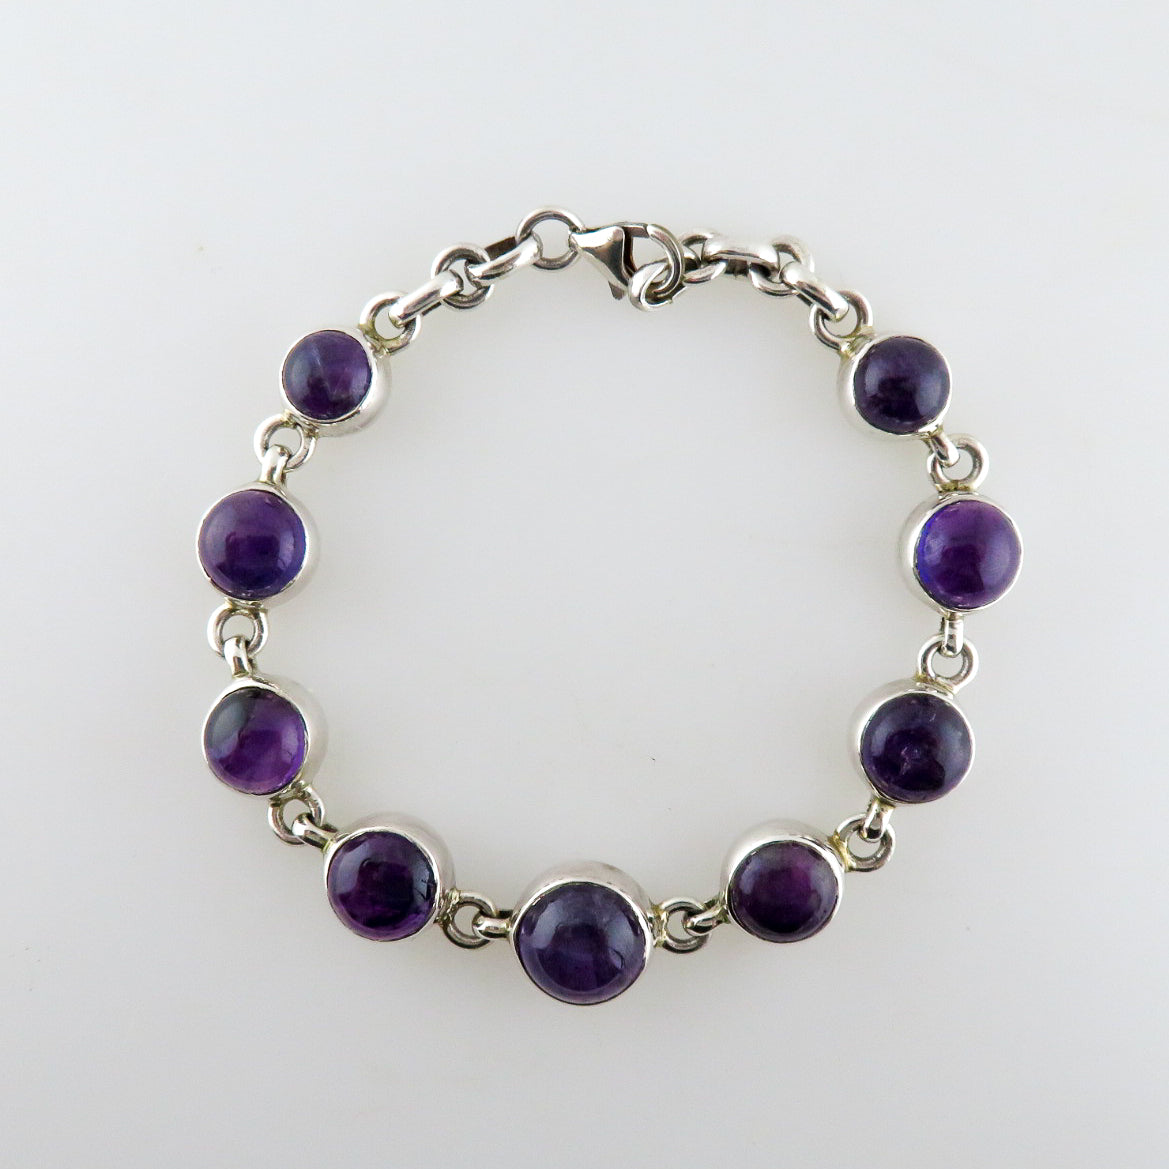 Amethyst Bracelet with Sterling Silver